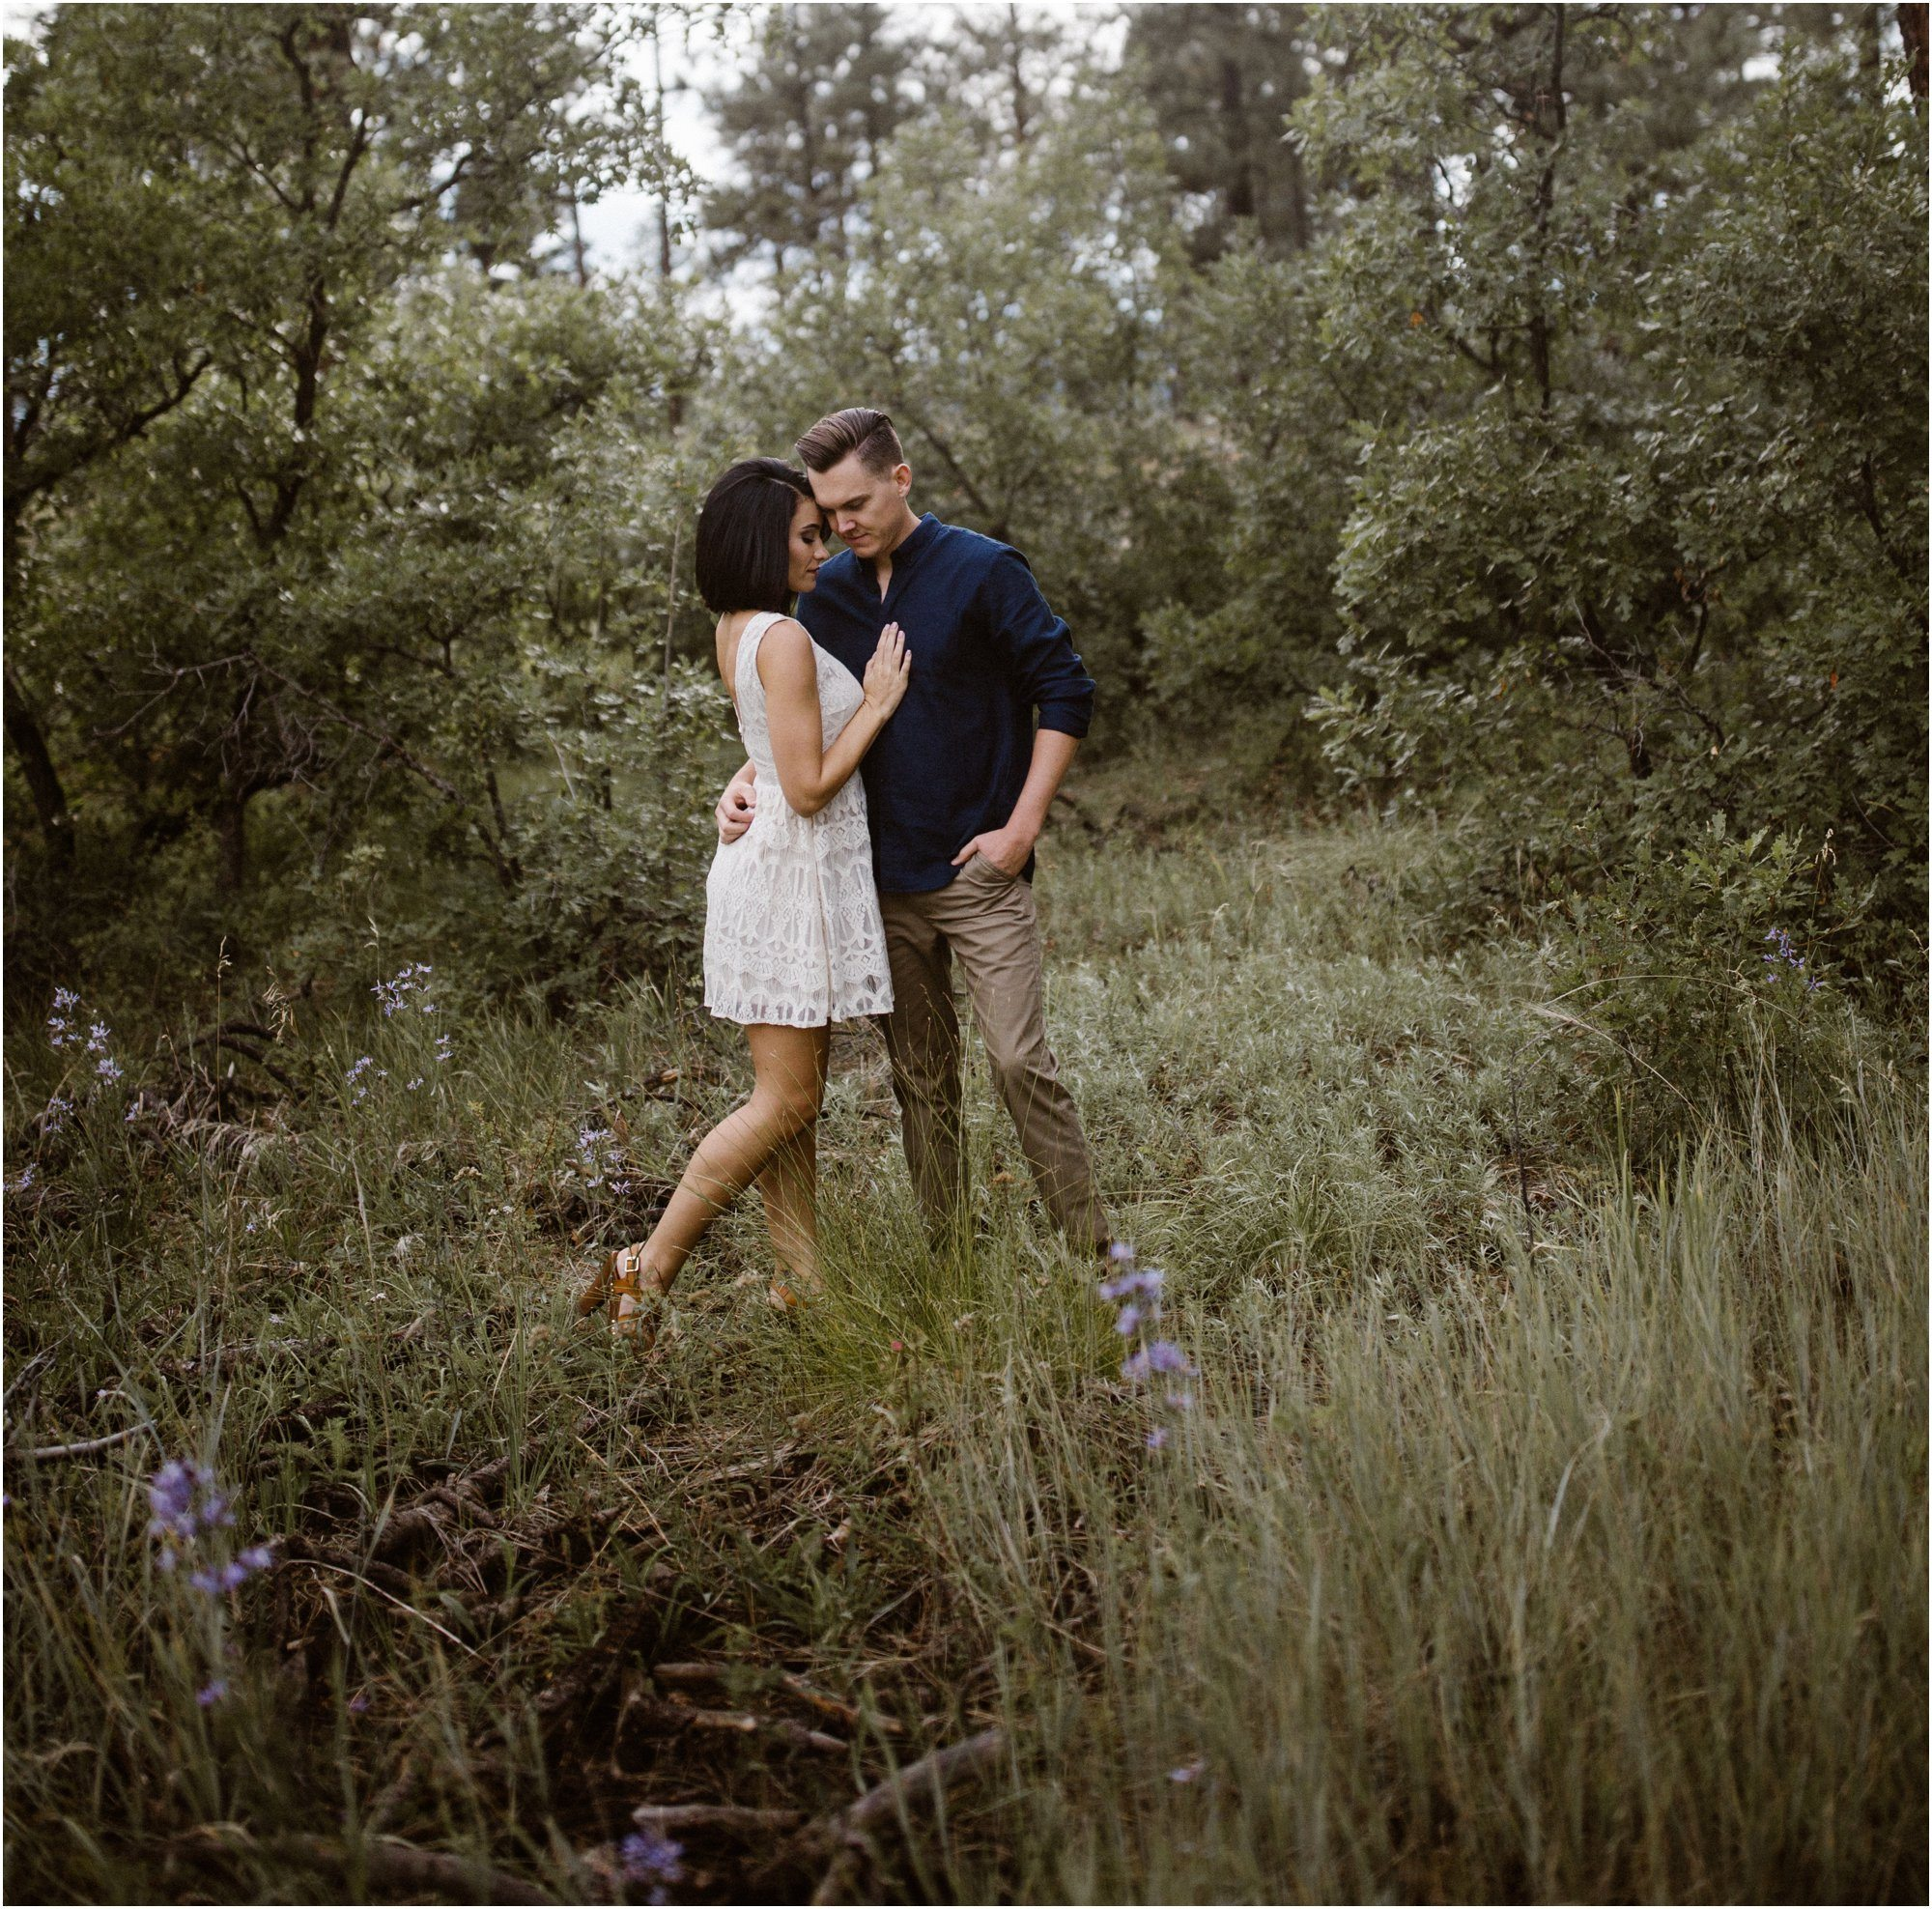 069Blue Rose Photography_ Albuquerque Engagement Photographer_ Blue Rose Studios_ Anniversary Pictures Santa Fe Photographer